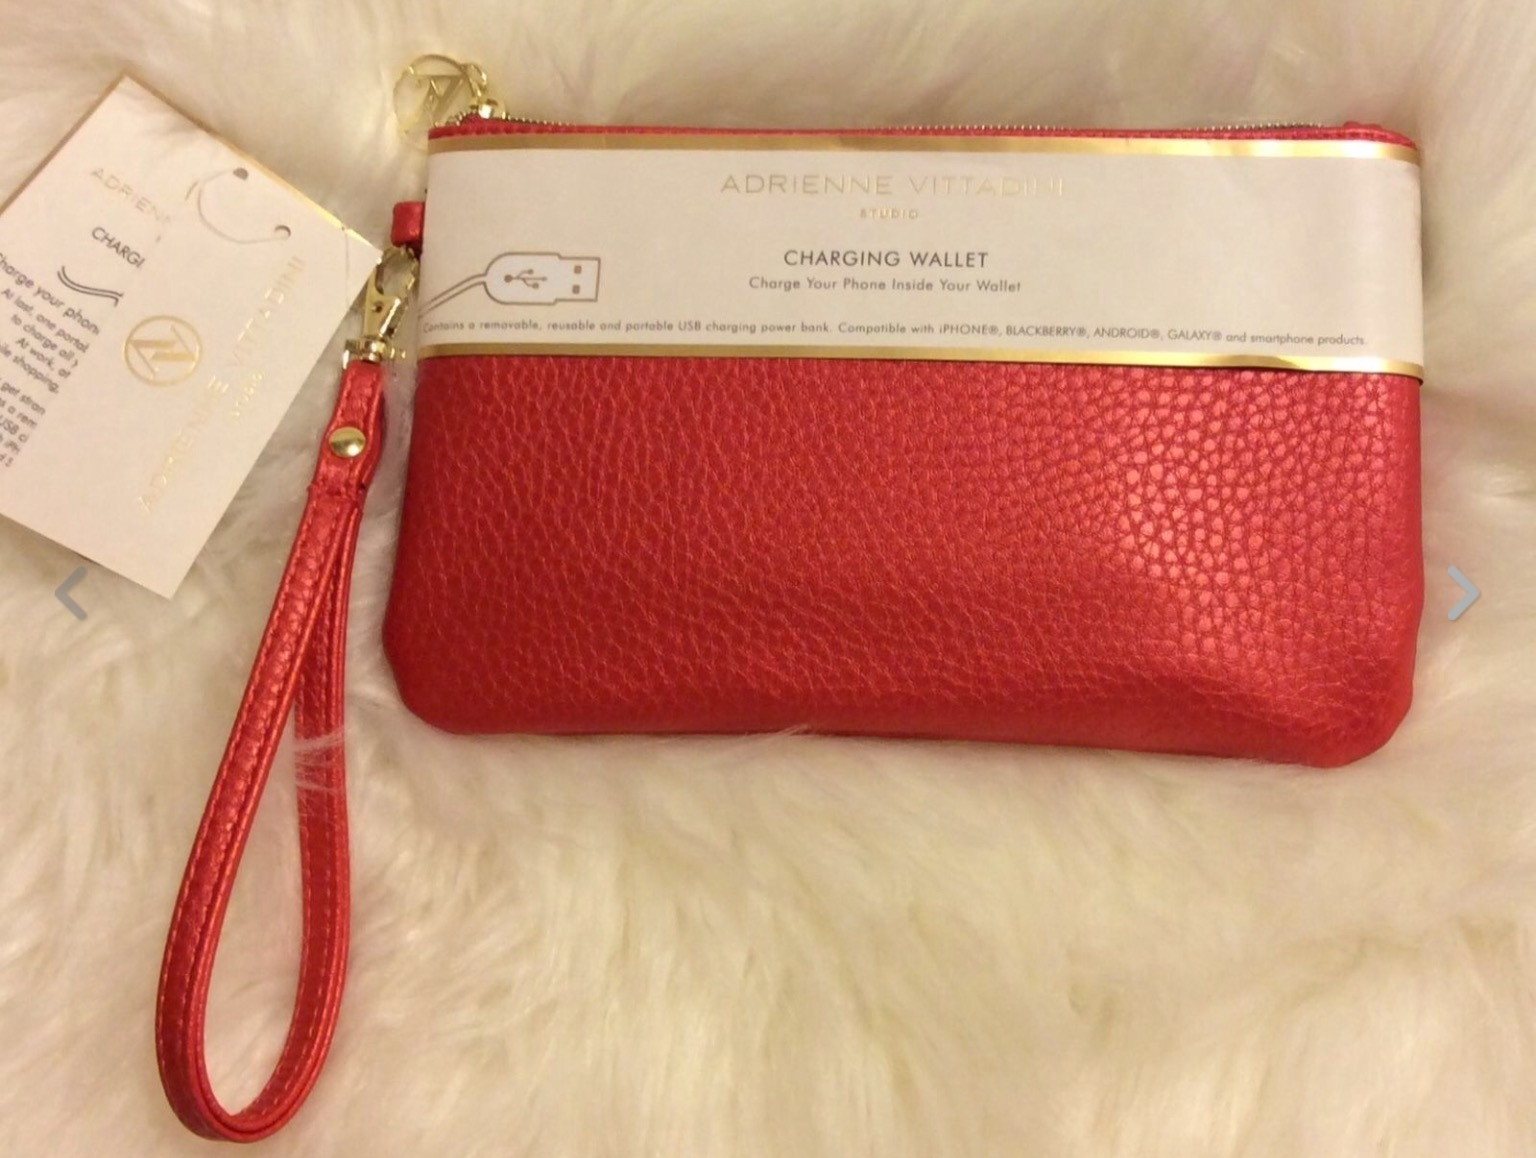 NEW ADRIENNE VITTADINI CELL PHONE CHARGING WALLET WRISTLET Persimmon Red Pebble